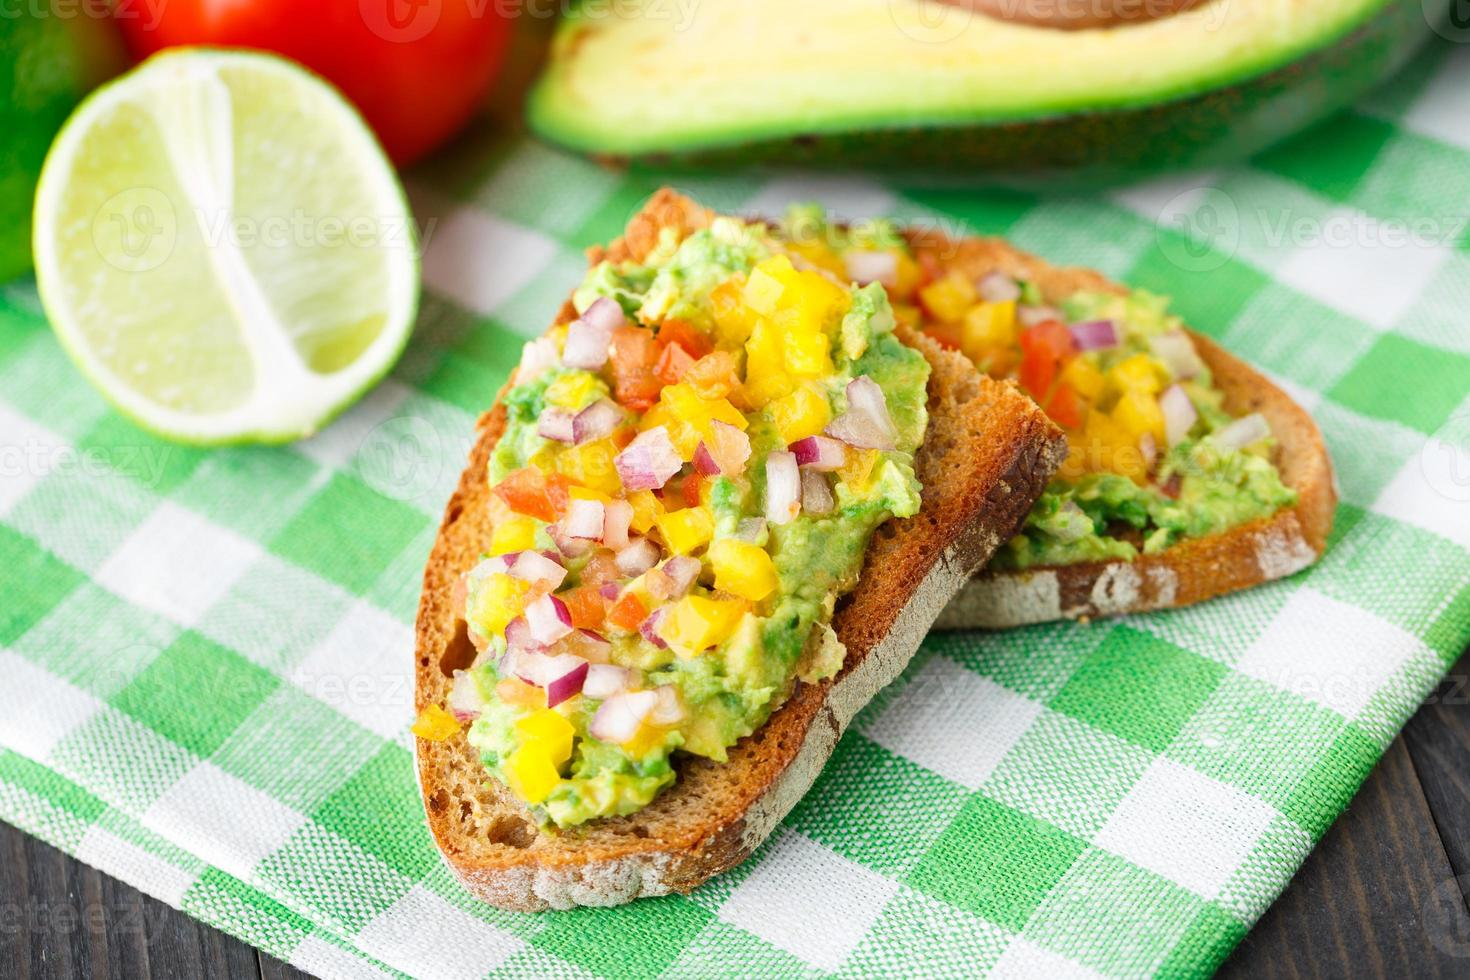 Sandwich with avocado photo